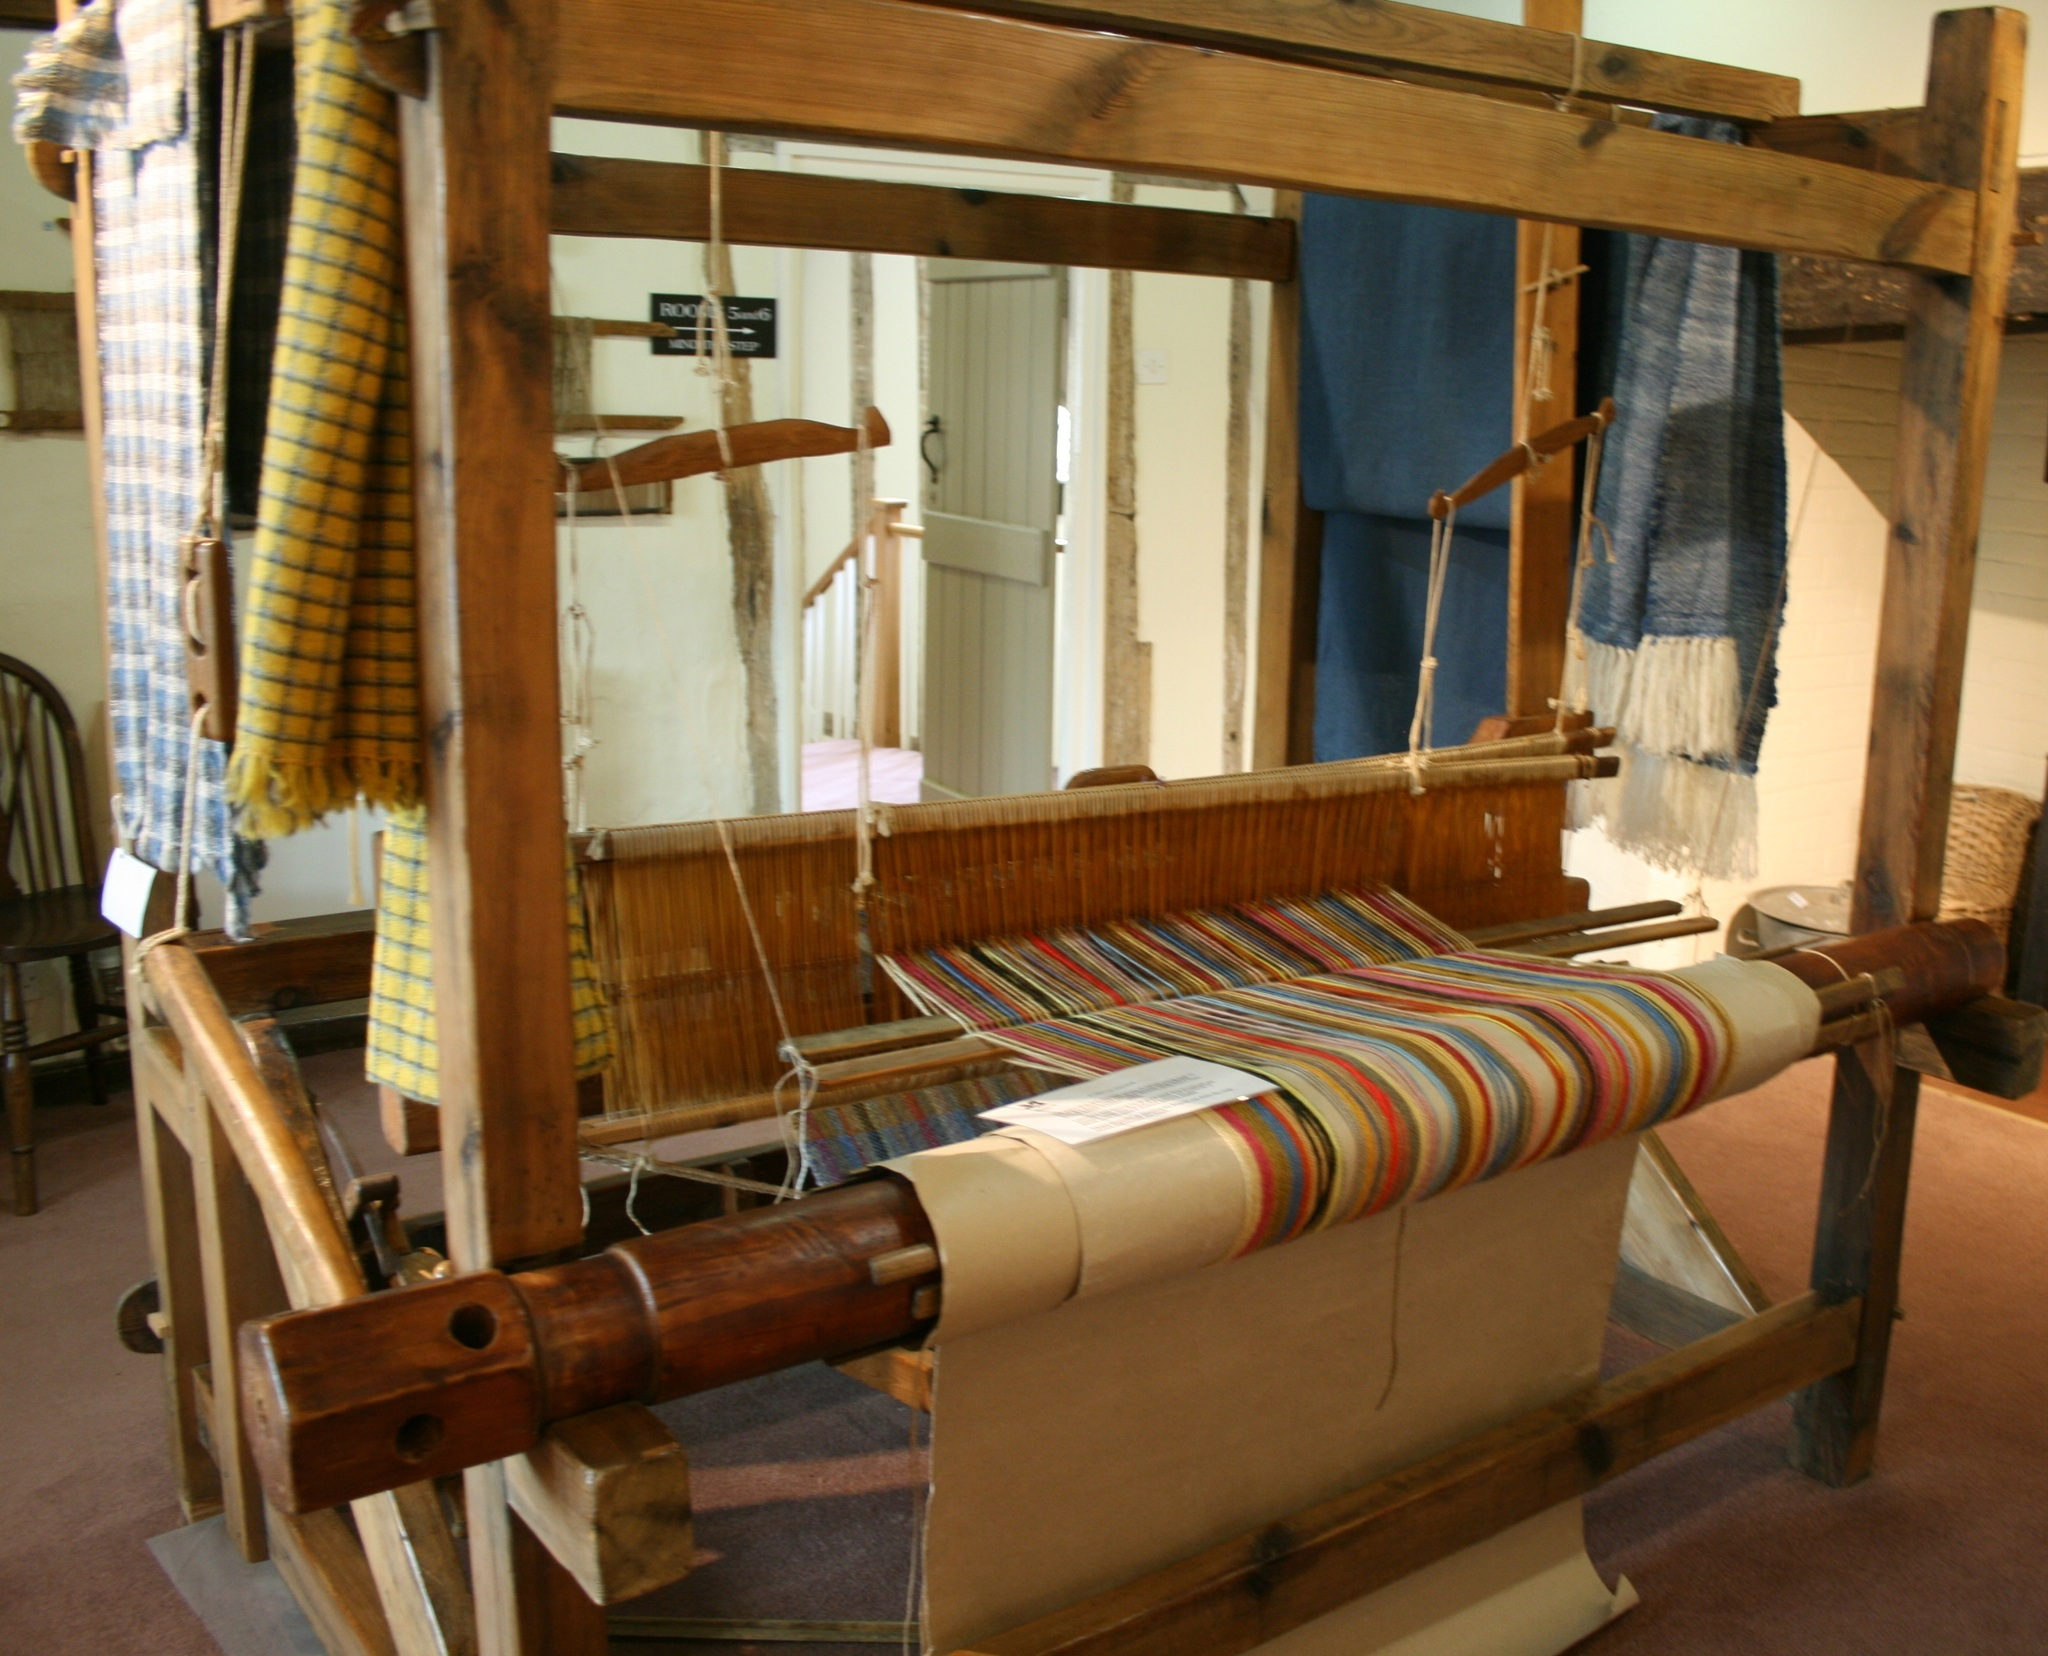 Manufacture of Lavenham blue cloth in medieval times